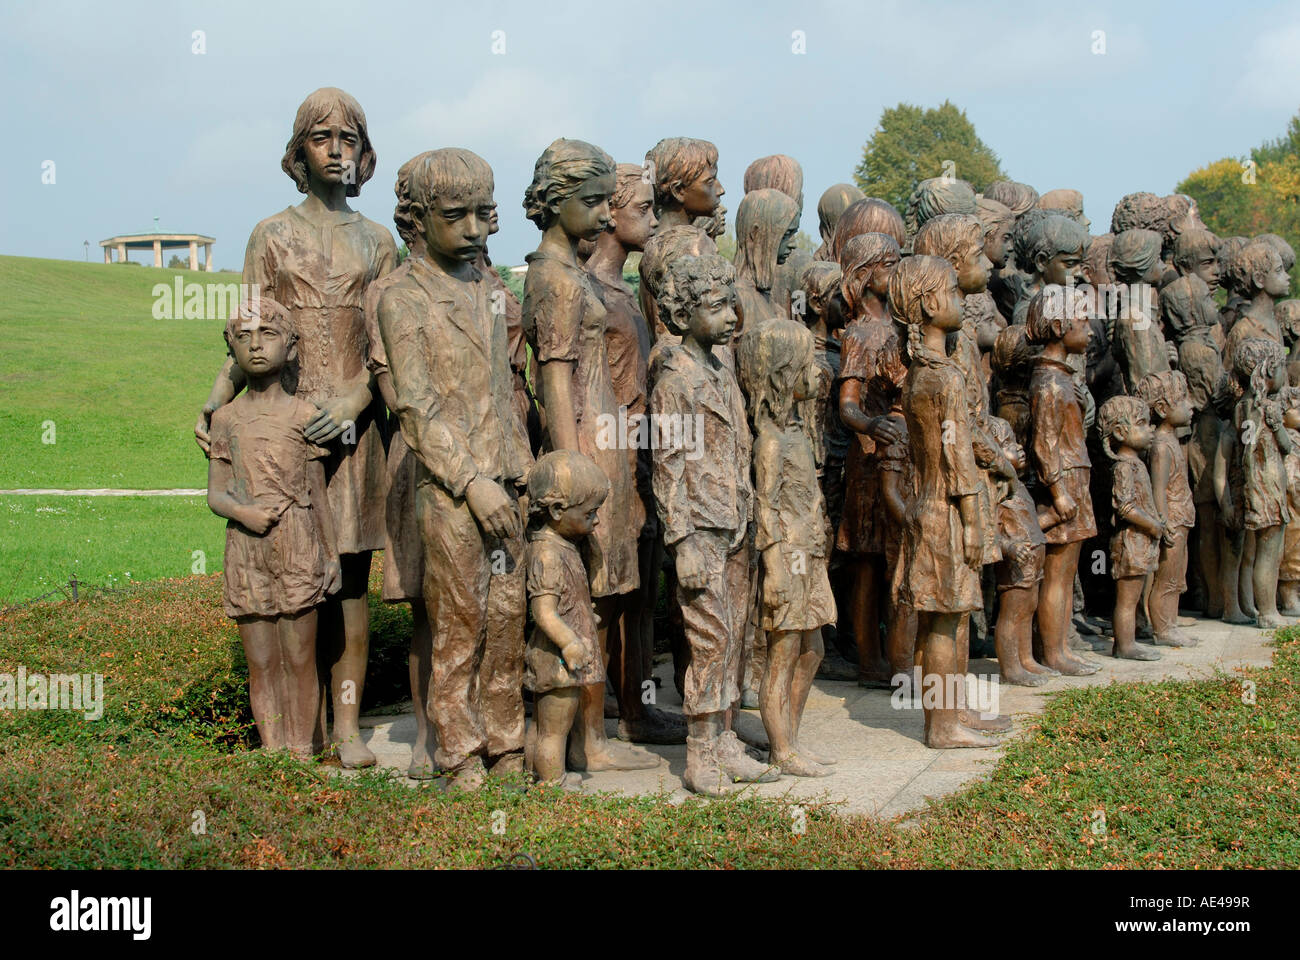 Memorial to children of Lidice, Lidice, Central Bohemia, Czech Republic, Europe Stock Photo